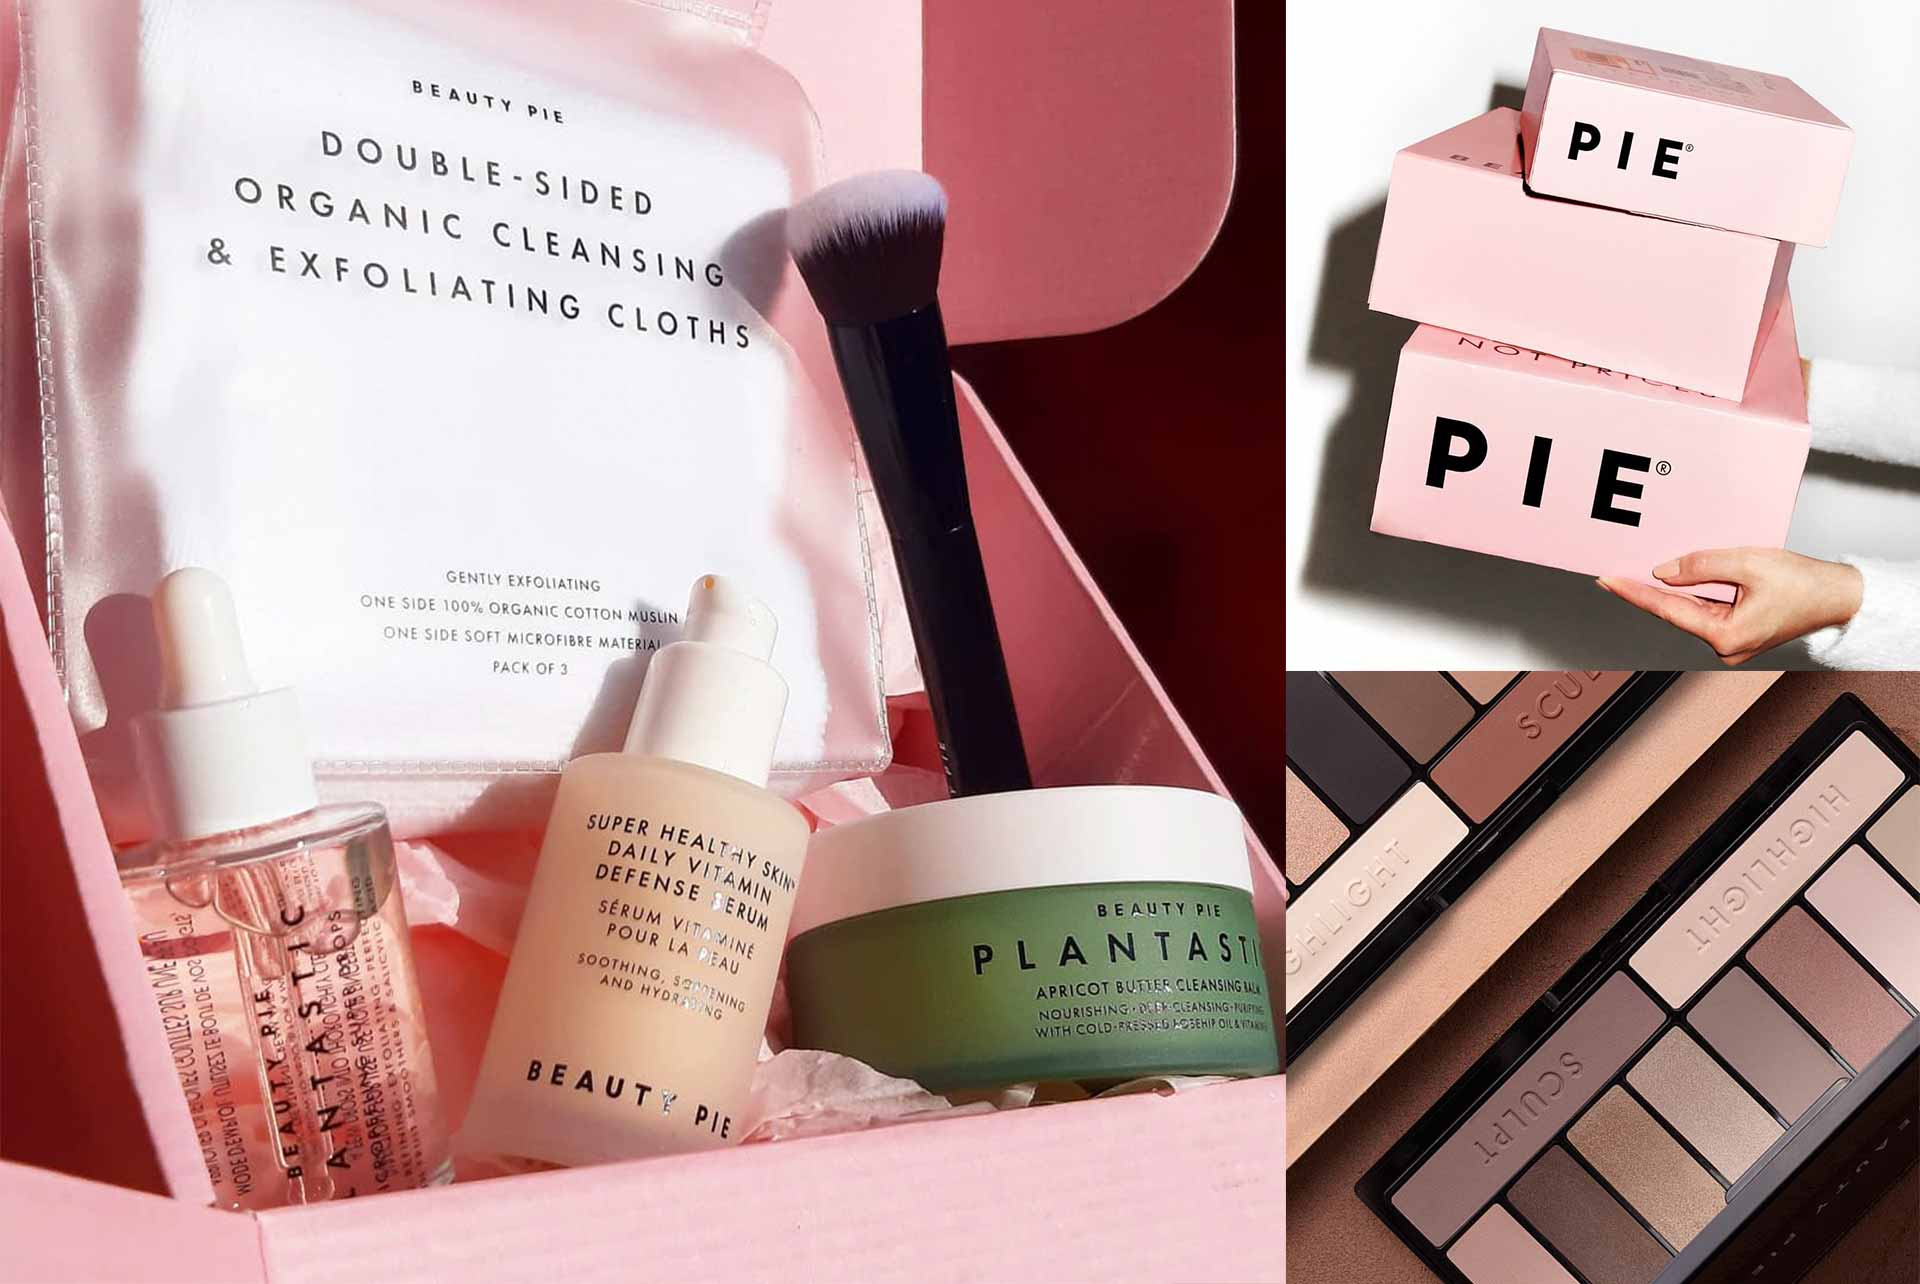 Is Beauty Pie Cruelty-Free & Vegan?